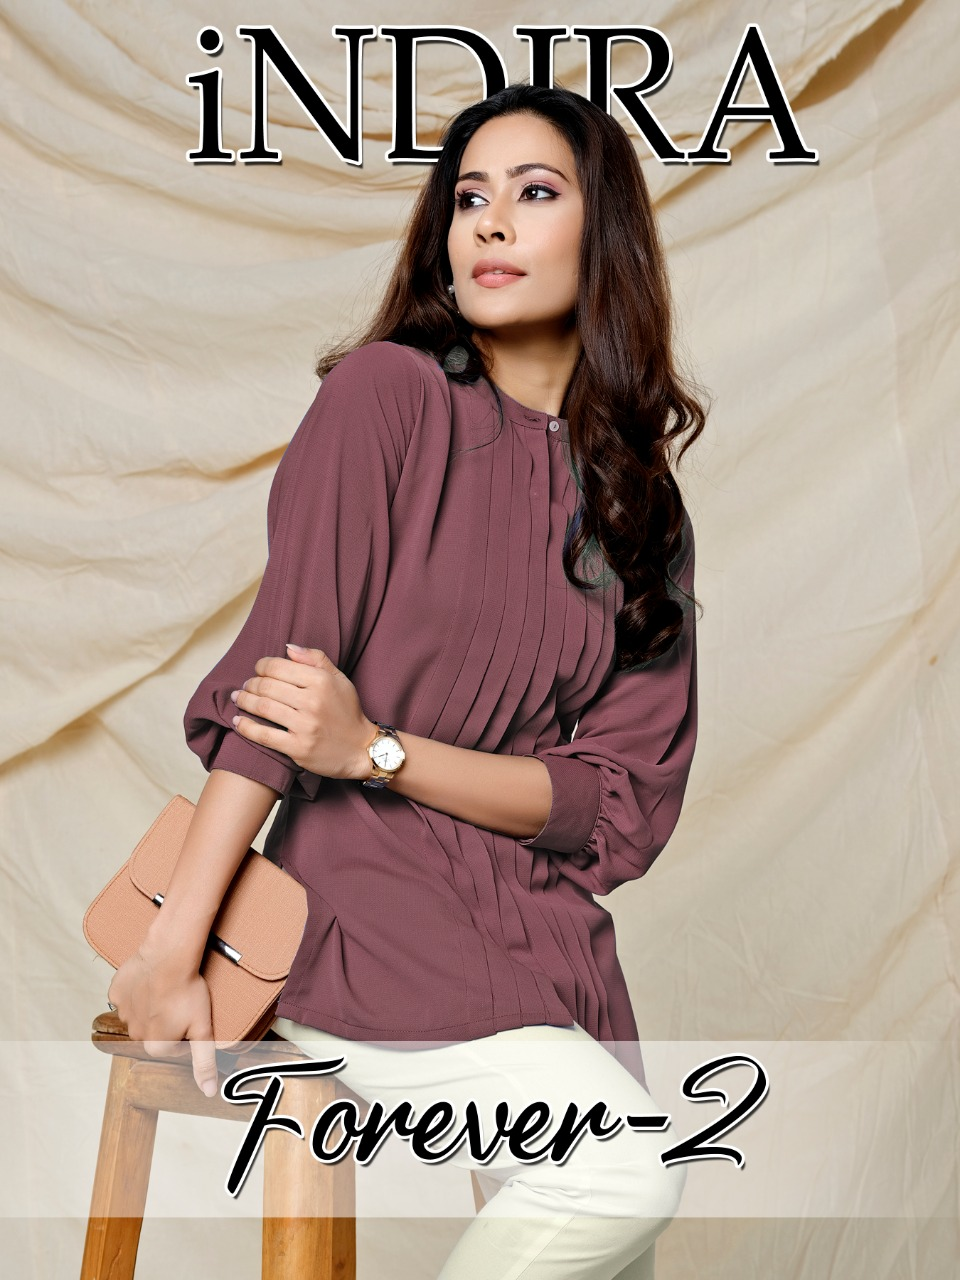 Indira Forever Vol 2 Soft Viscose Georgette Wrinkle Free Readymade Tops With Bottom At Wholesale Rate